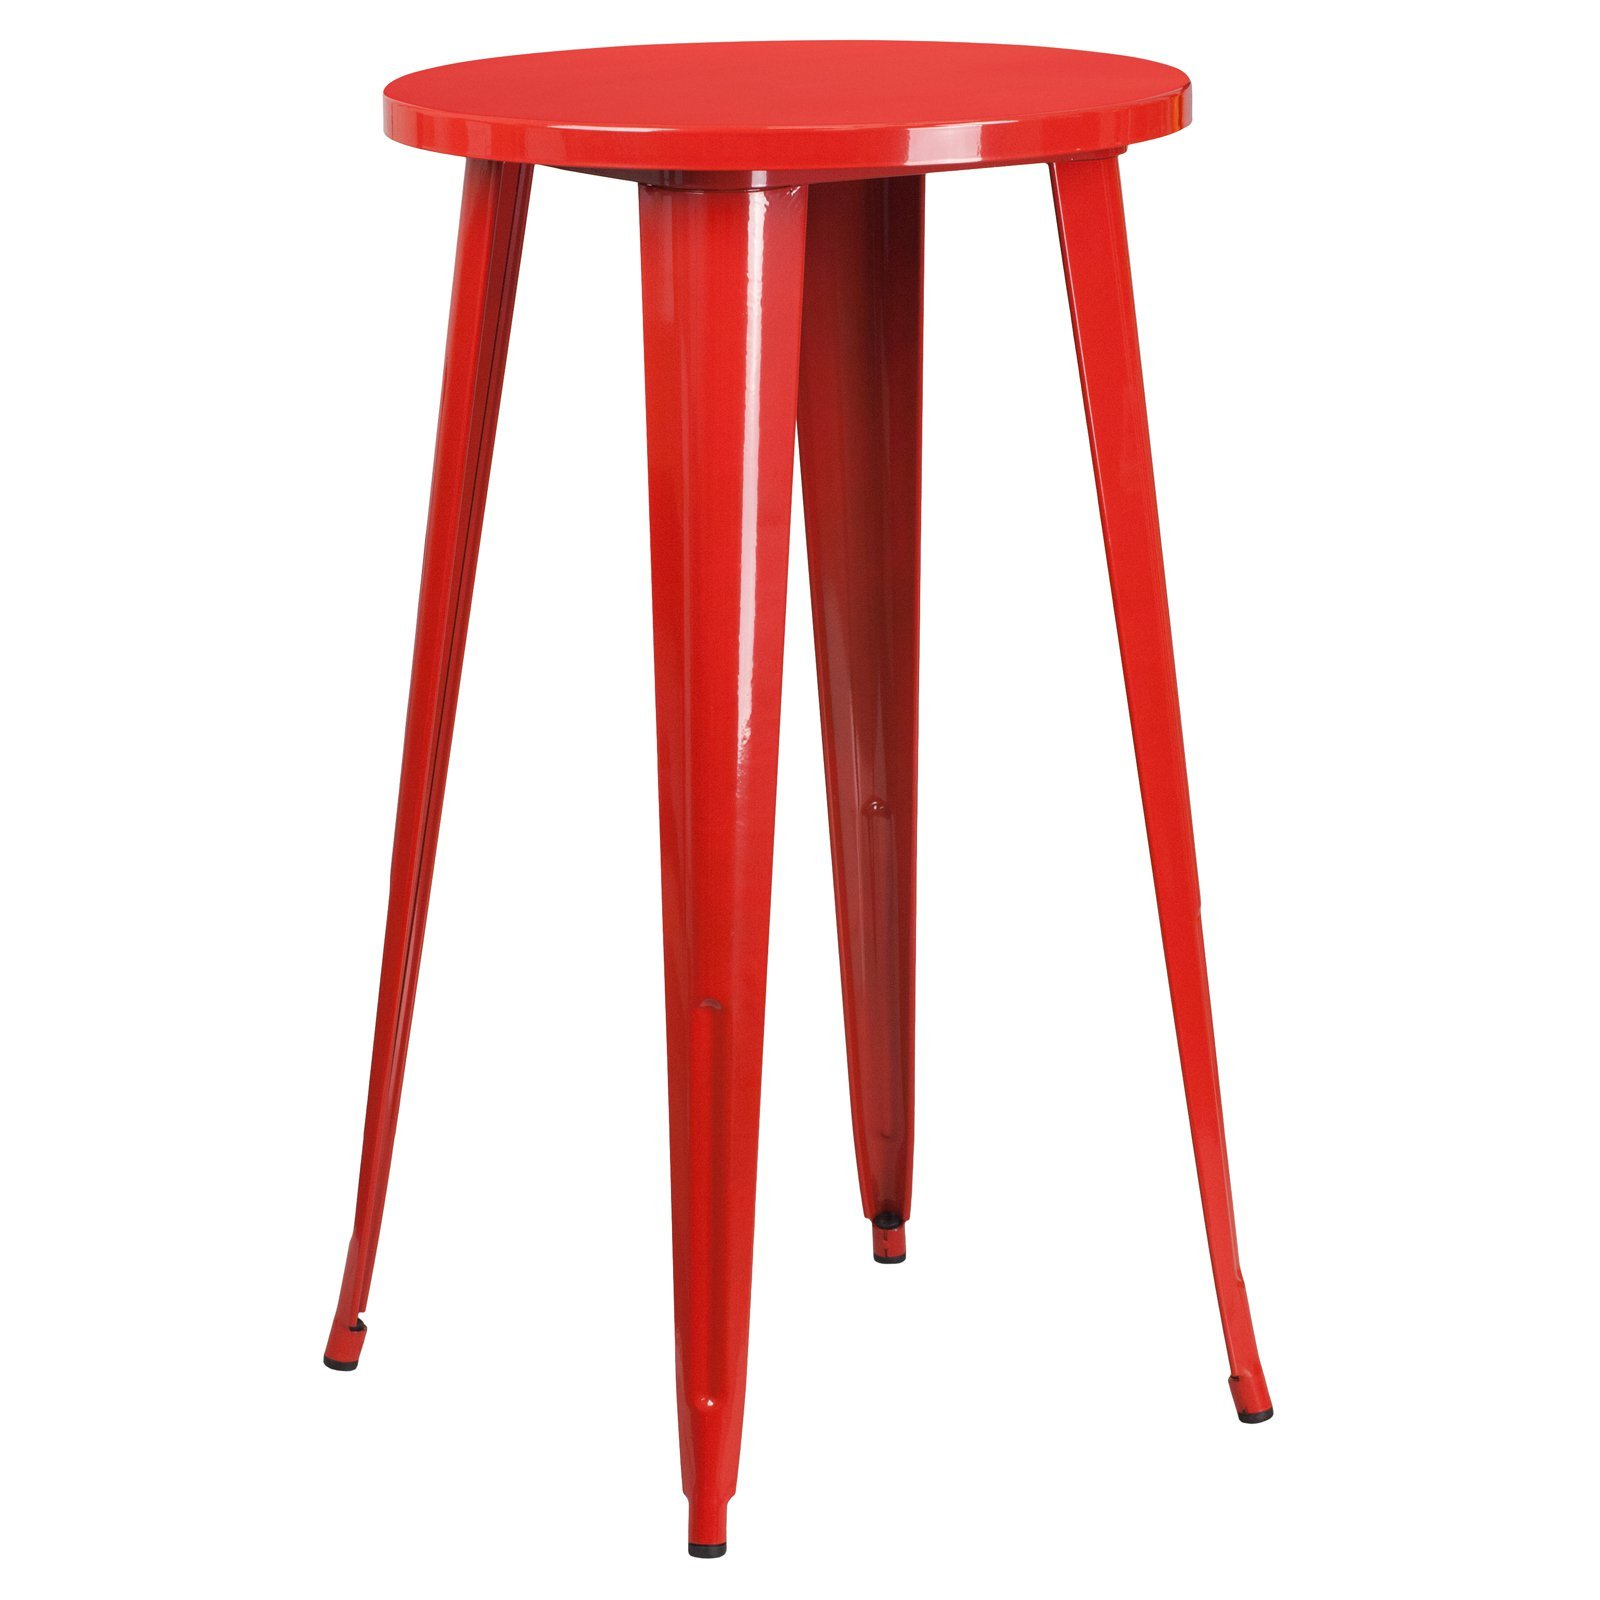 Basic Round Metal Indoor/Outdoor Bar Height Table with Protective Rubber Feet to Prevent Floor Damage, Thick Brace Underneath for Added Stability, Red + Expert Home Guide by Love US